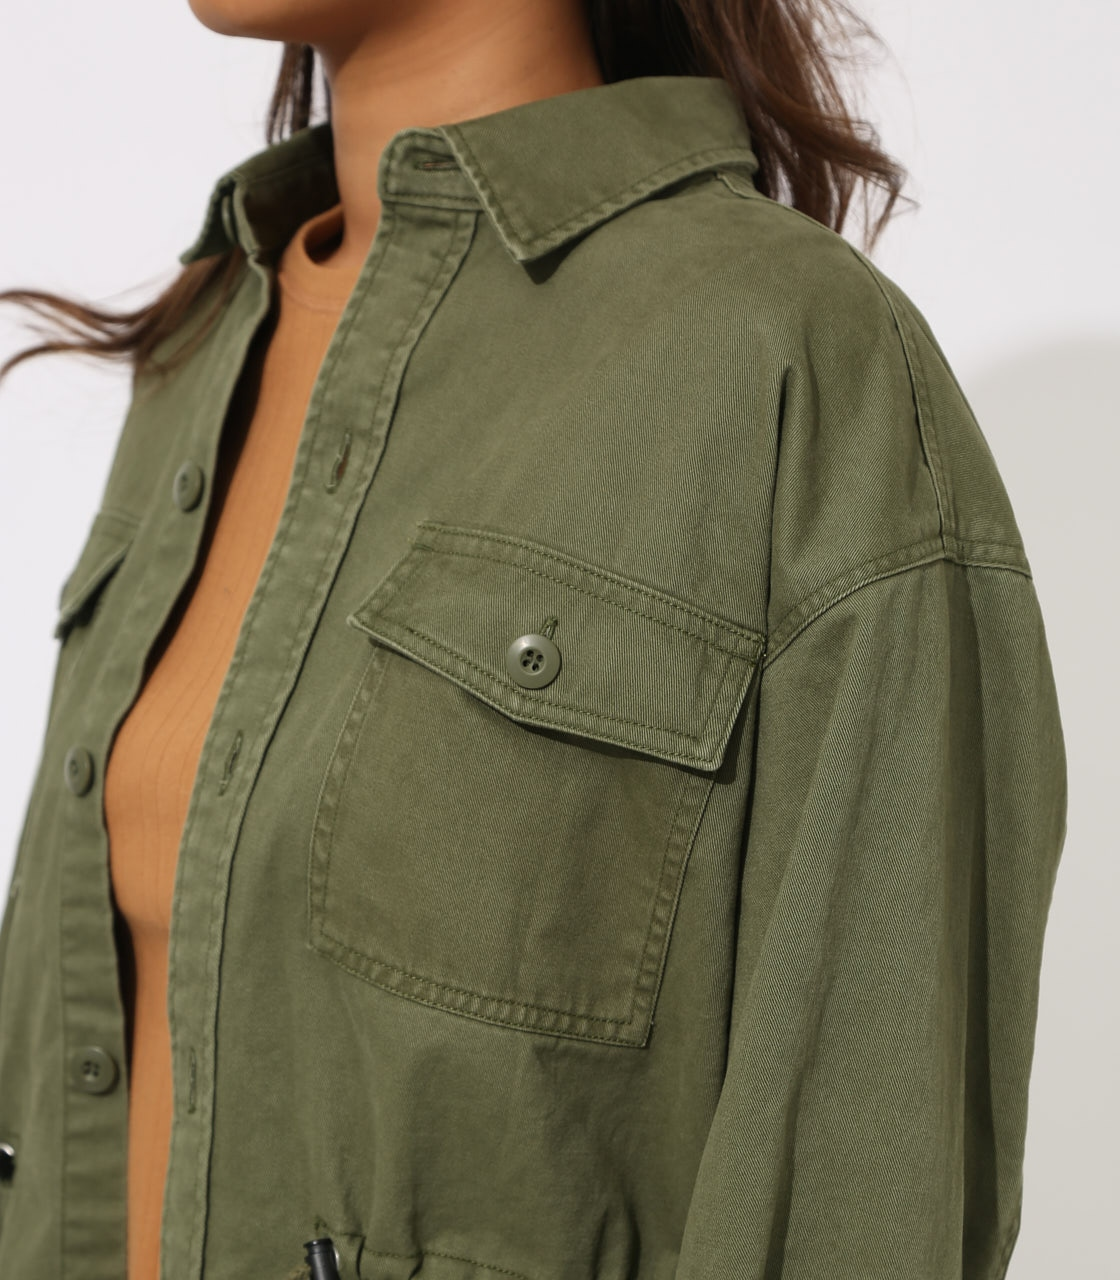 【AZUL BY MOUSSY】Military Blouson 詳細画像 L/KHA 8